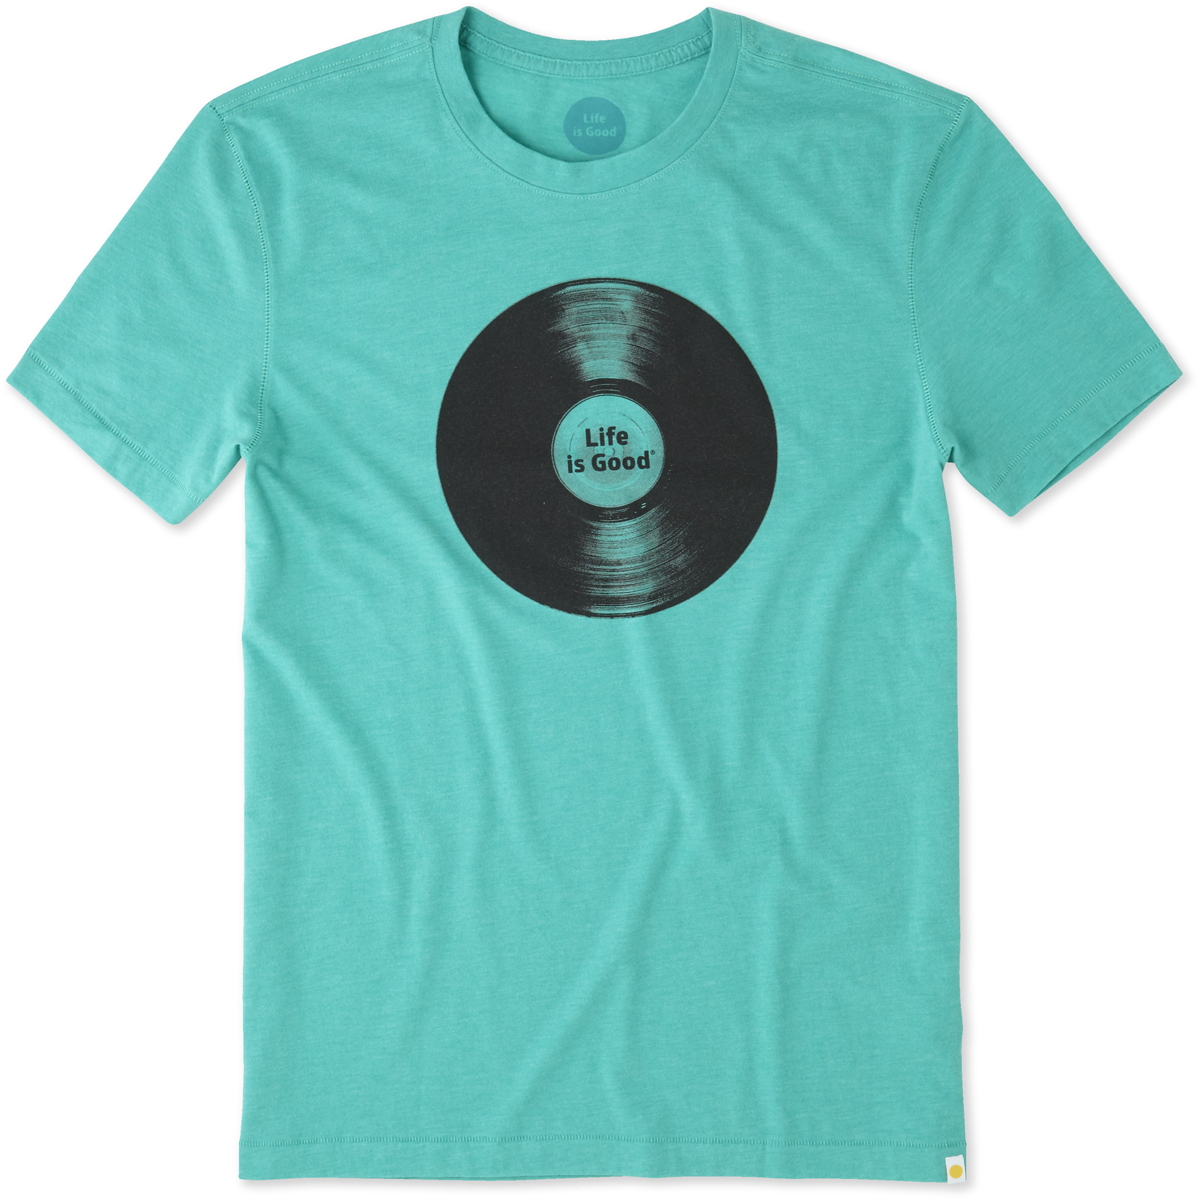 Life is Good. Men's Cool Tee - Record LIG, Bright Teal